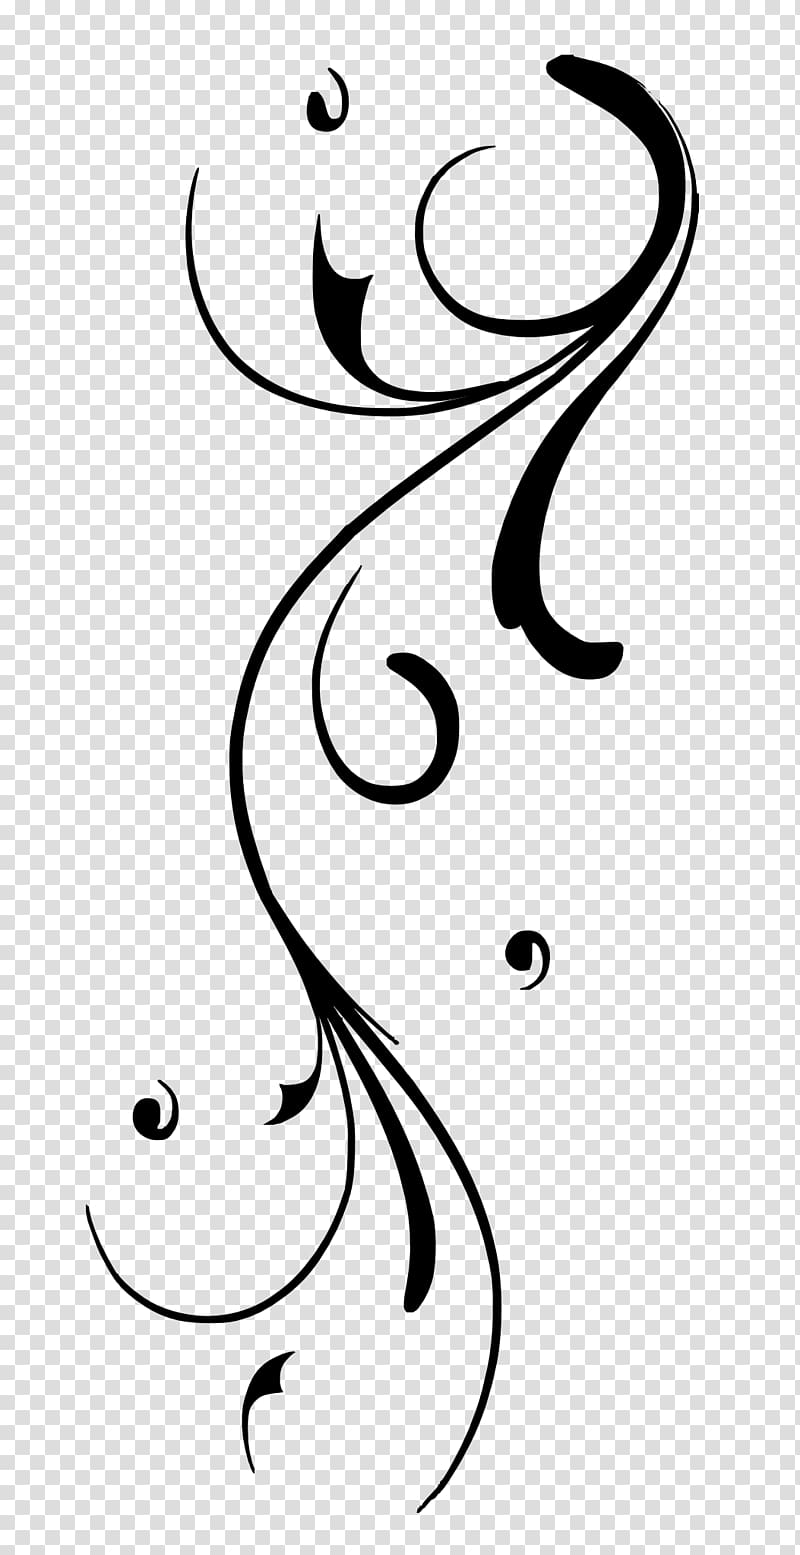 Swirl transparent background PNG clipart.